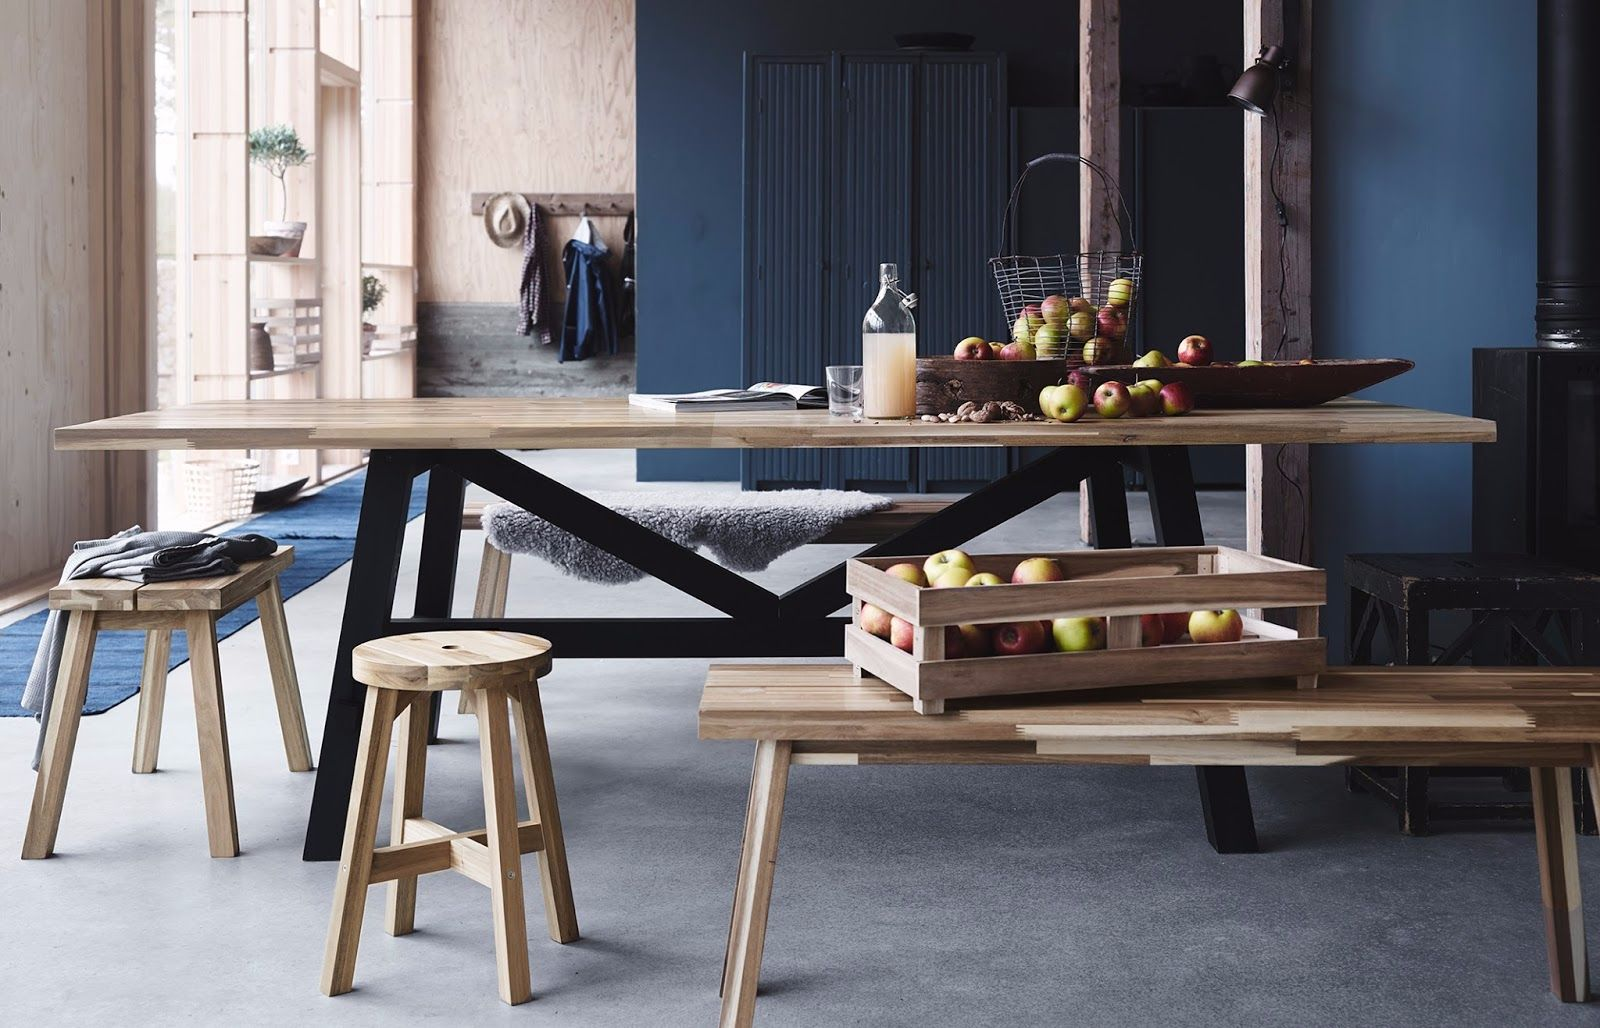 Furniture Finds 6 Dining Tables To Save Or Splurge On